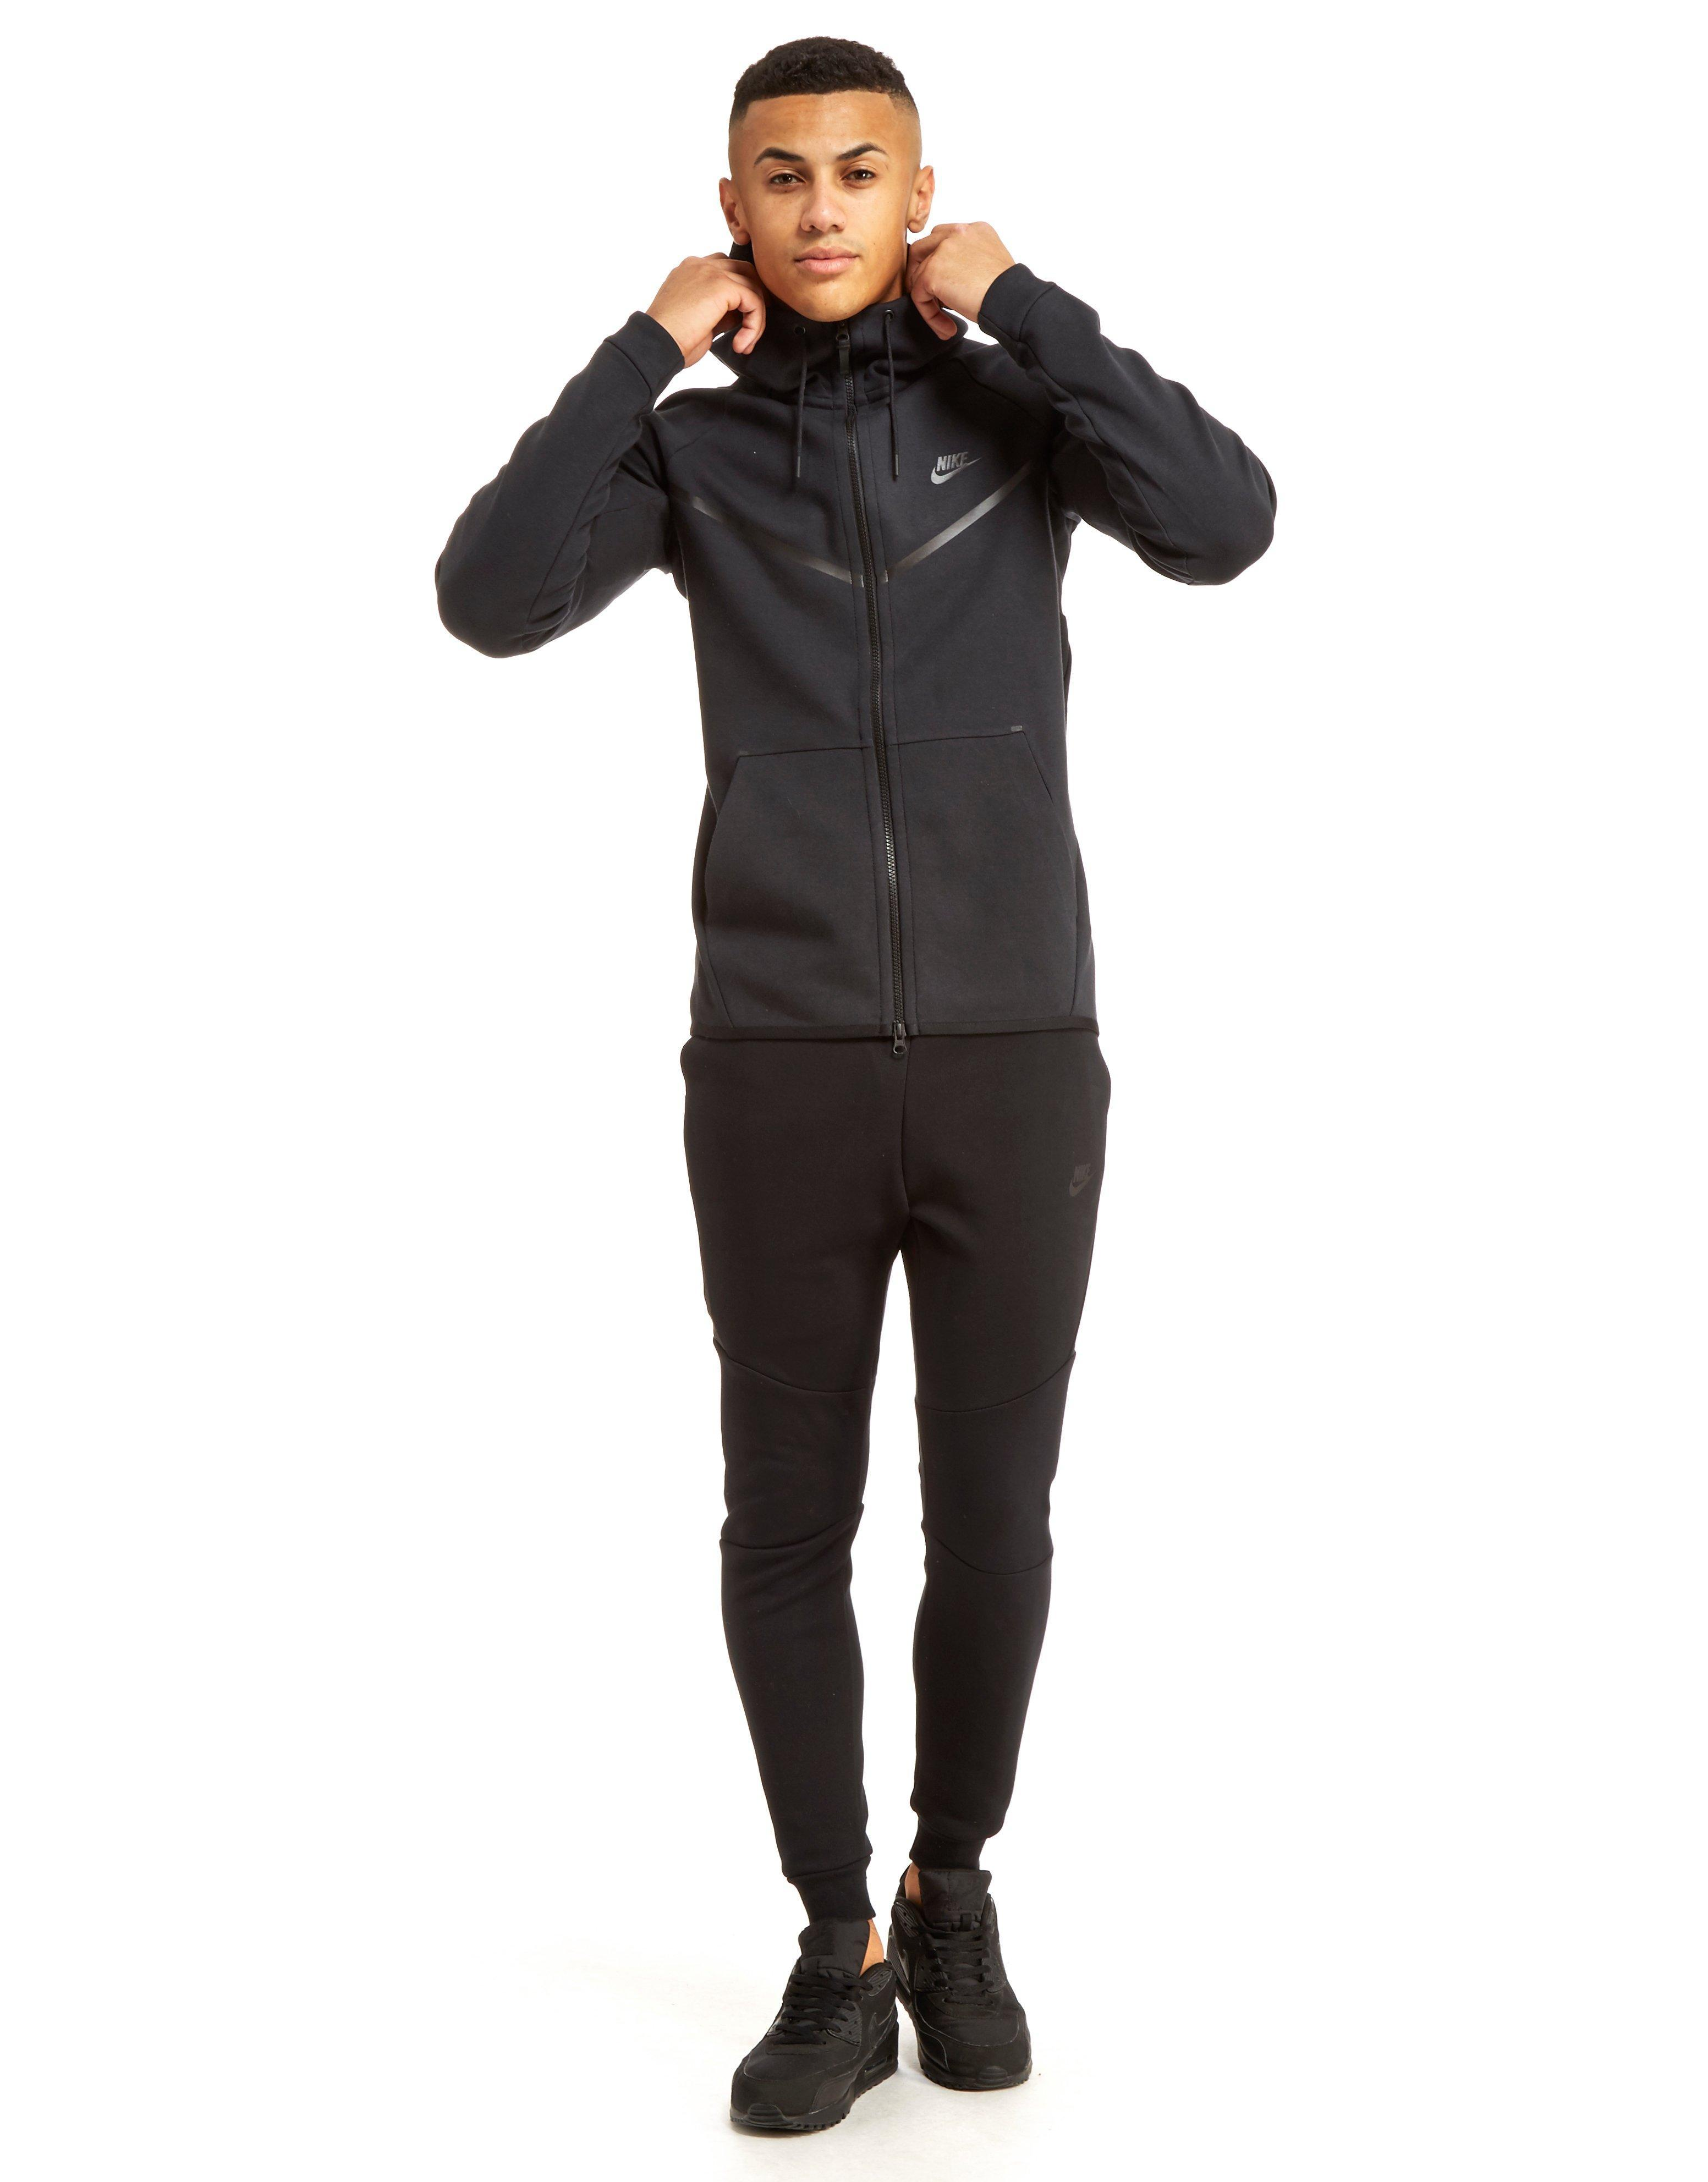 Lyst - Nike Tech Fleece Windrunner Hoody in Black for Men e19f60b4fc5f